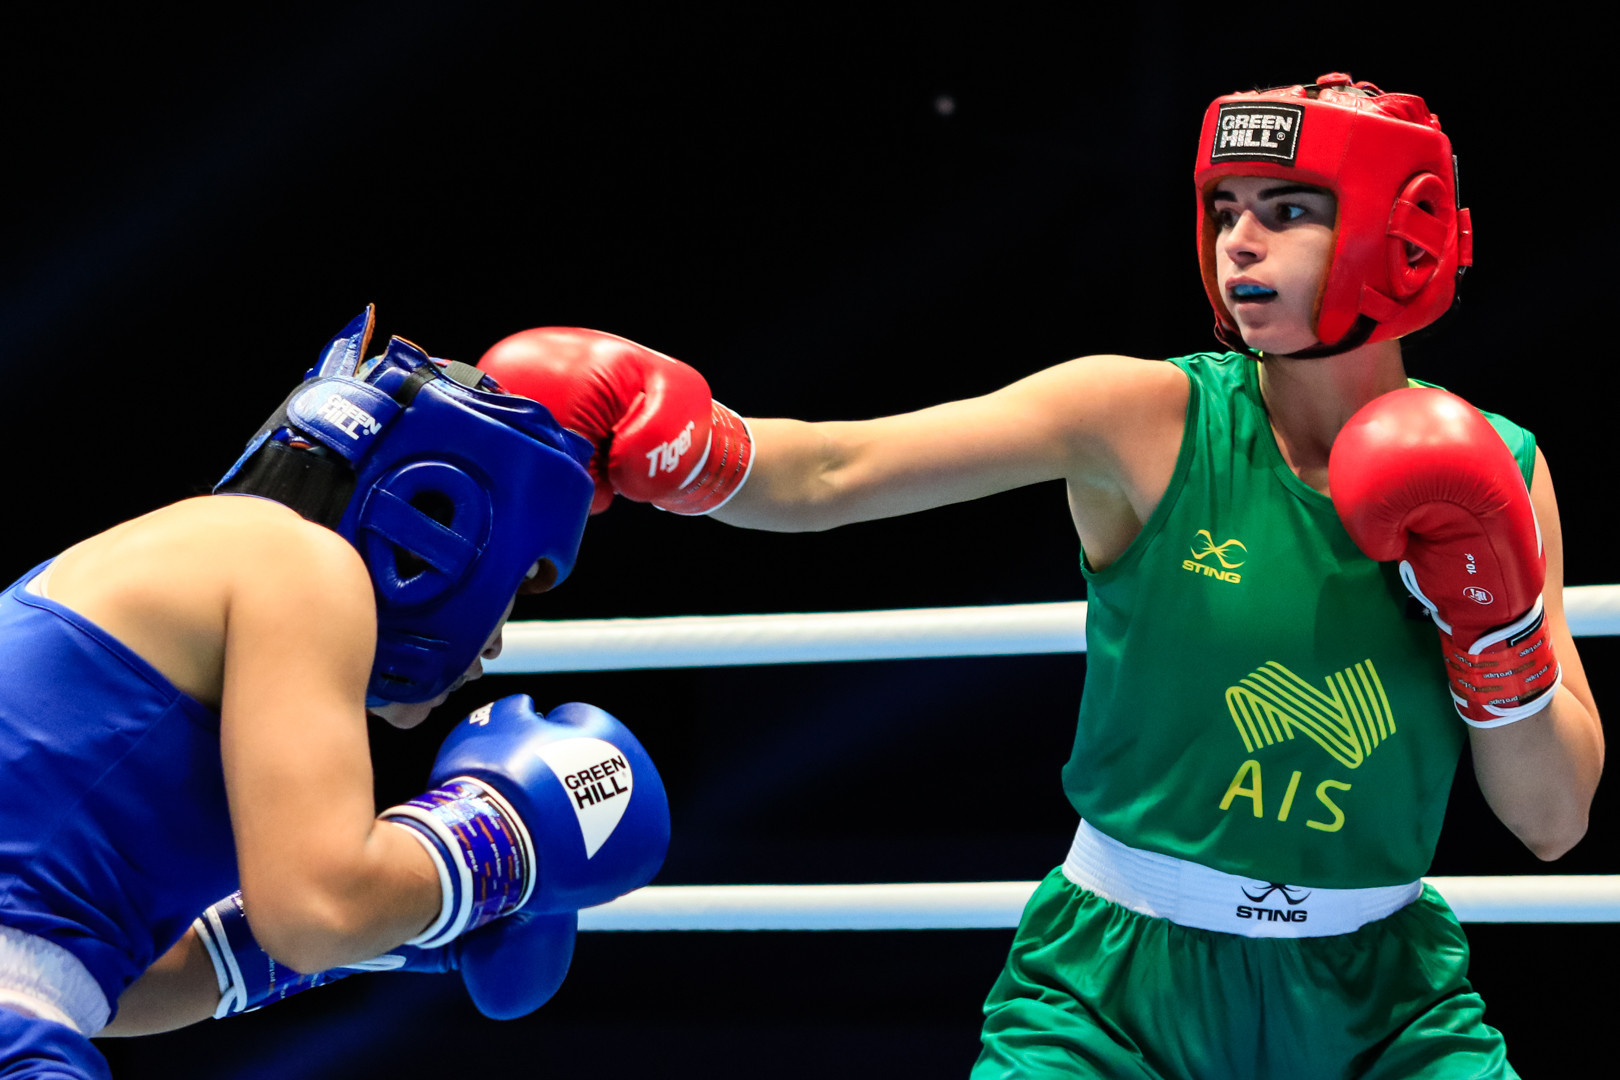 Commonwealth featherweight champion Nicolson triumphs in opening bout of AIBA Women's World Championships